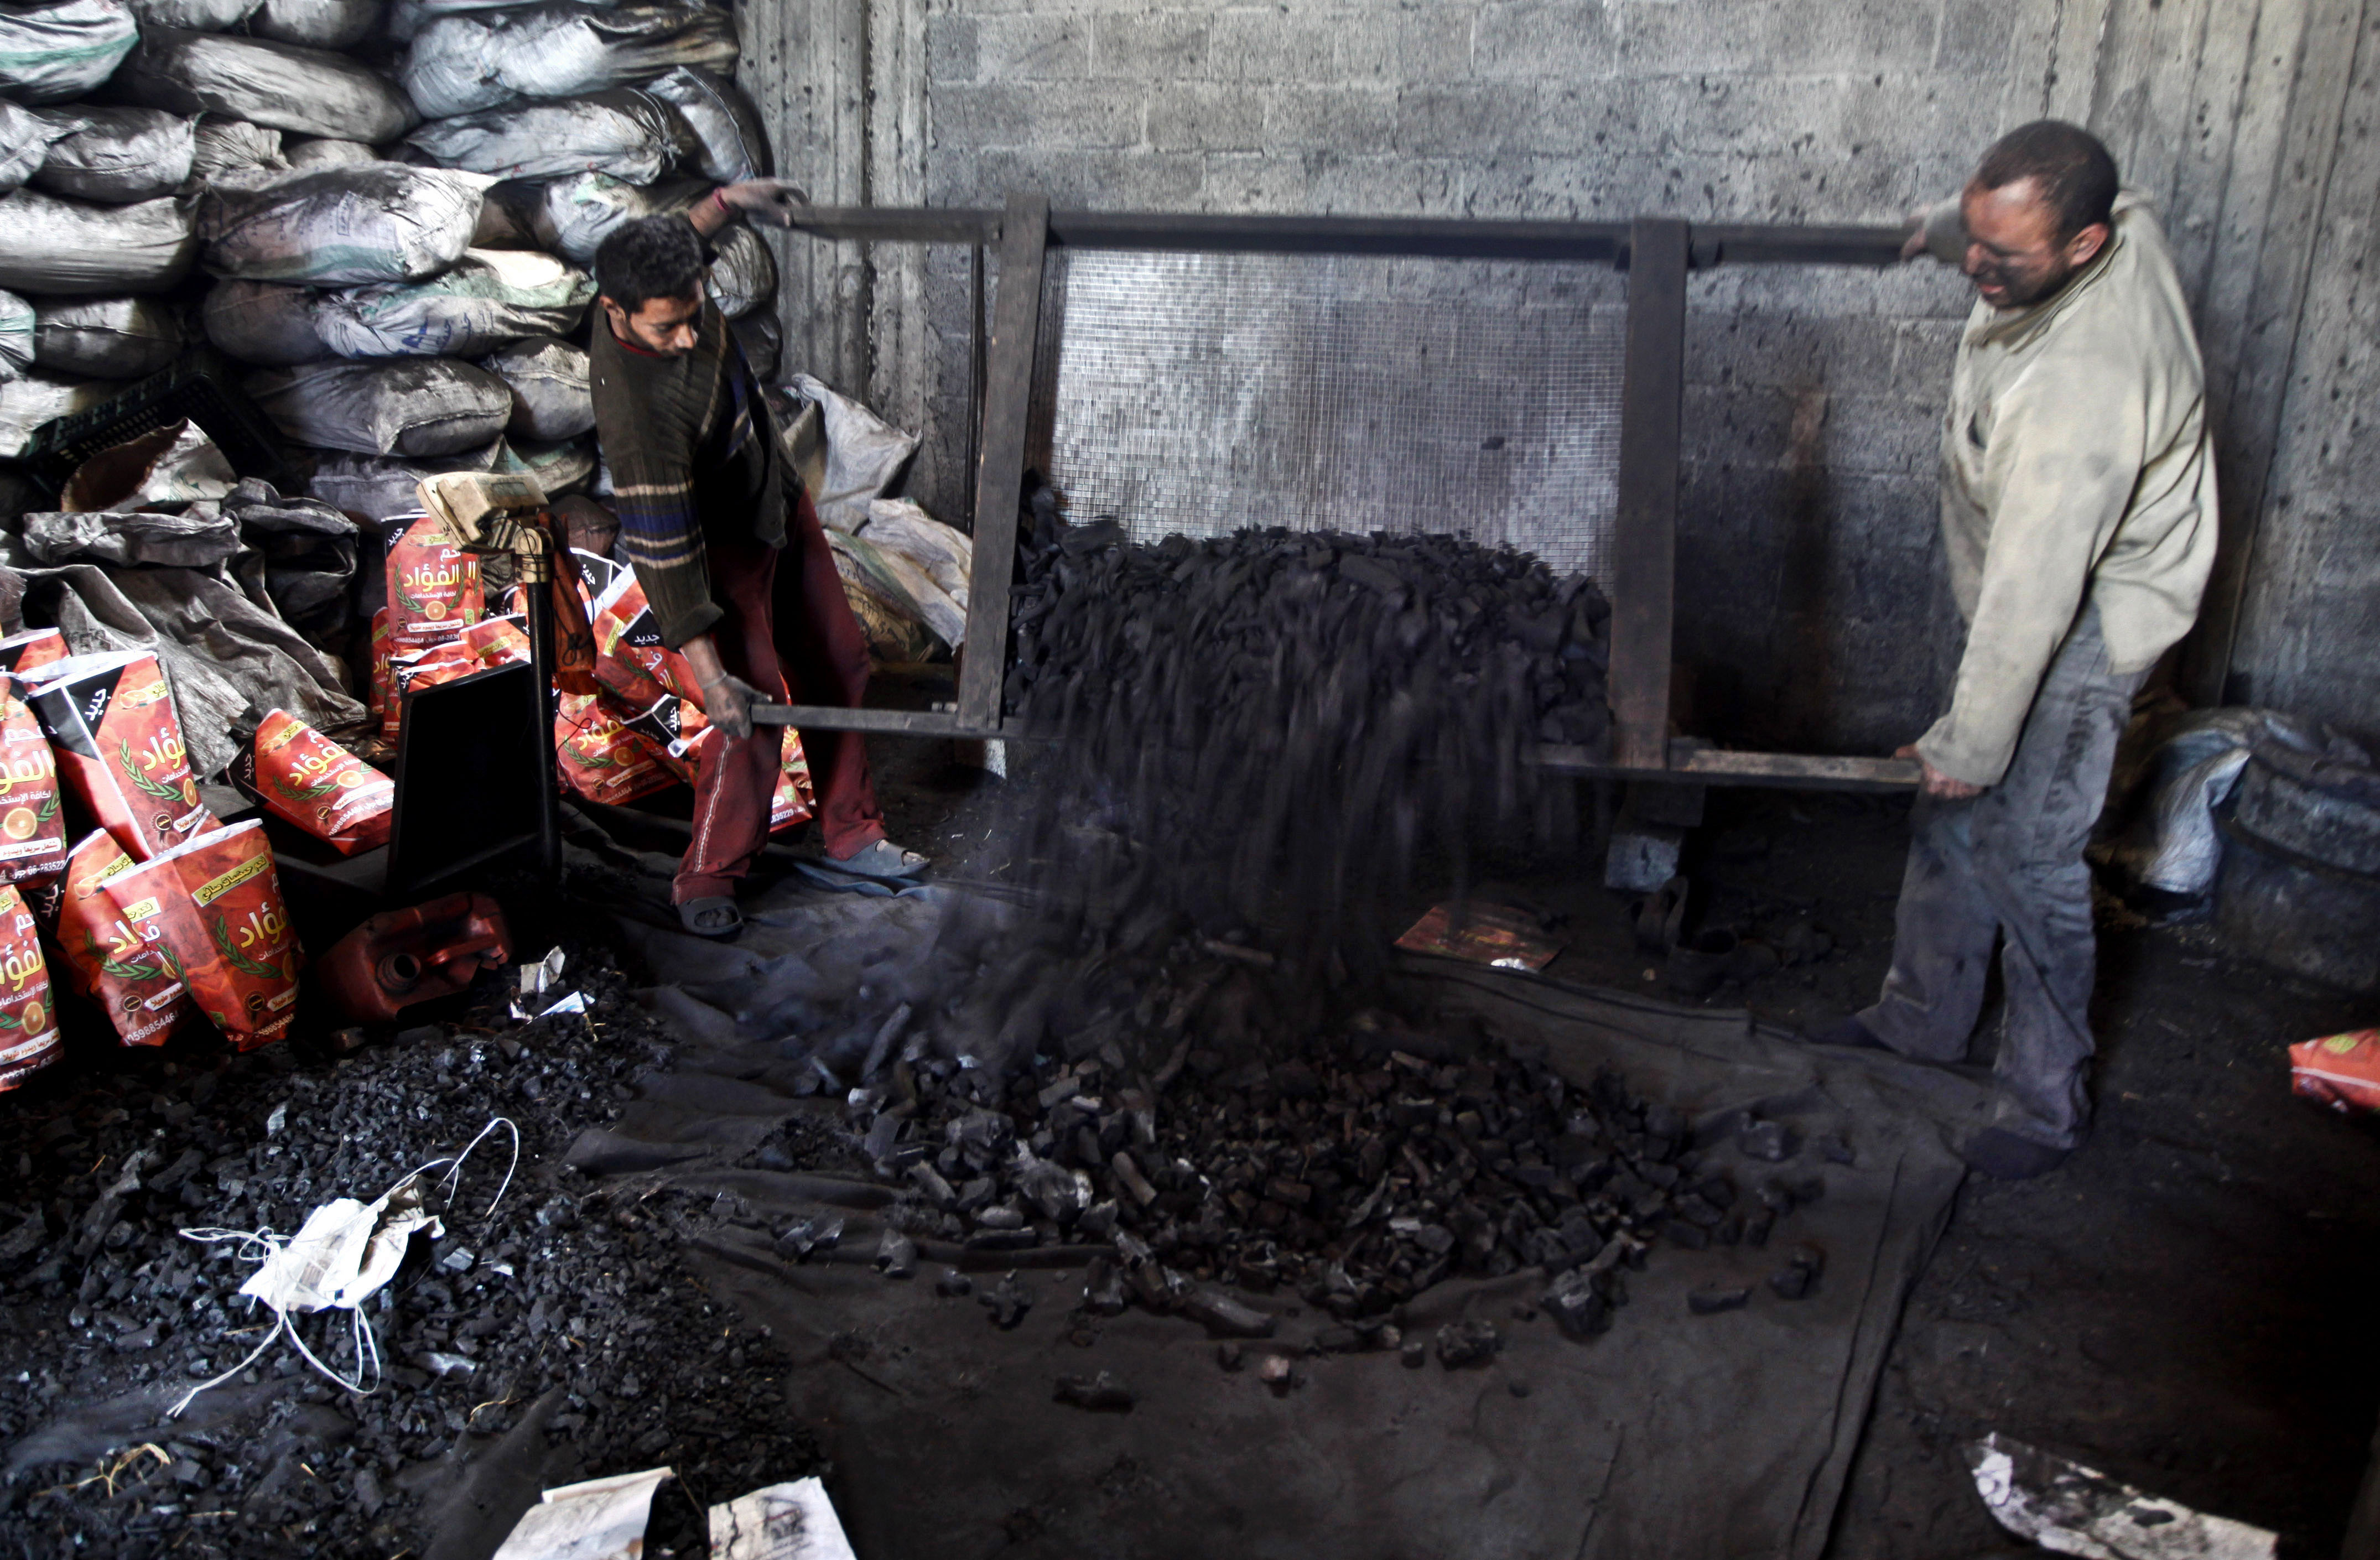 Palestinian workers sort coal to be sacked and sold, in the Jabalya refugee camp in the north of Gaza Strip.